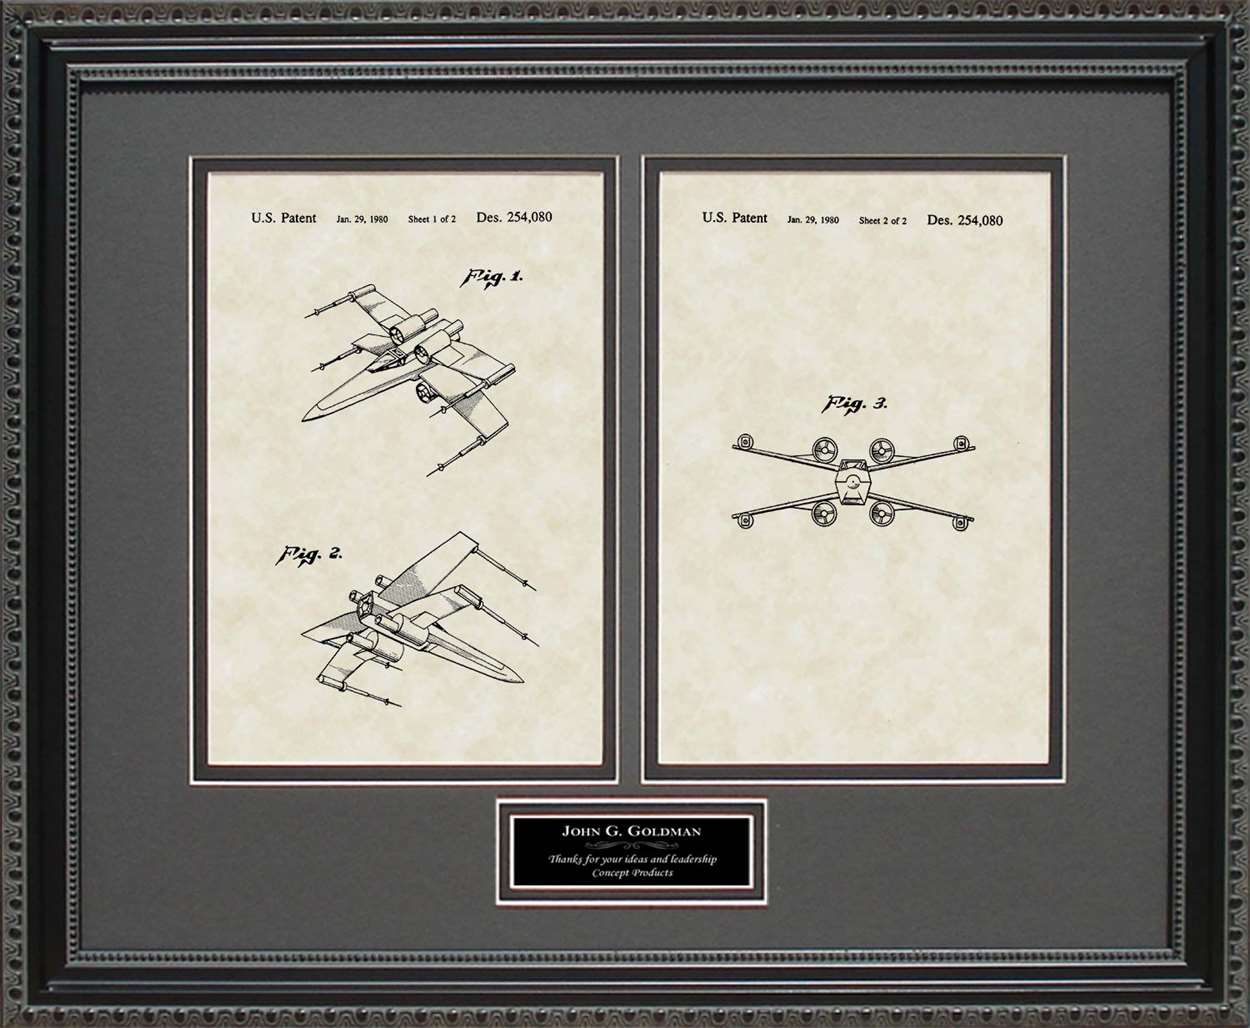 Personalized X-wing Fighter Patent, Art & Copy, Johnston, 1980